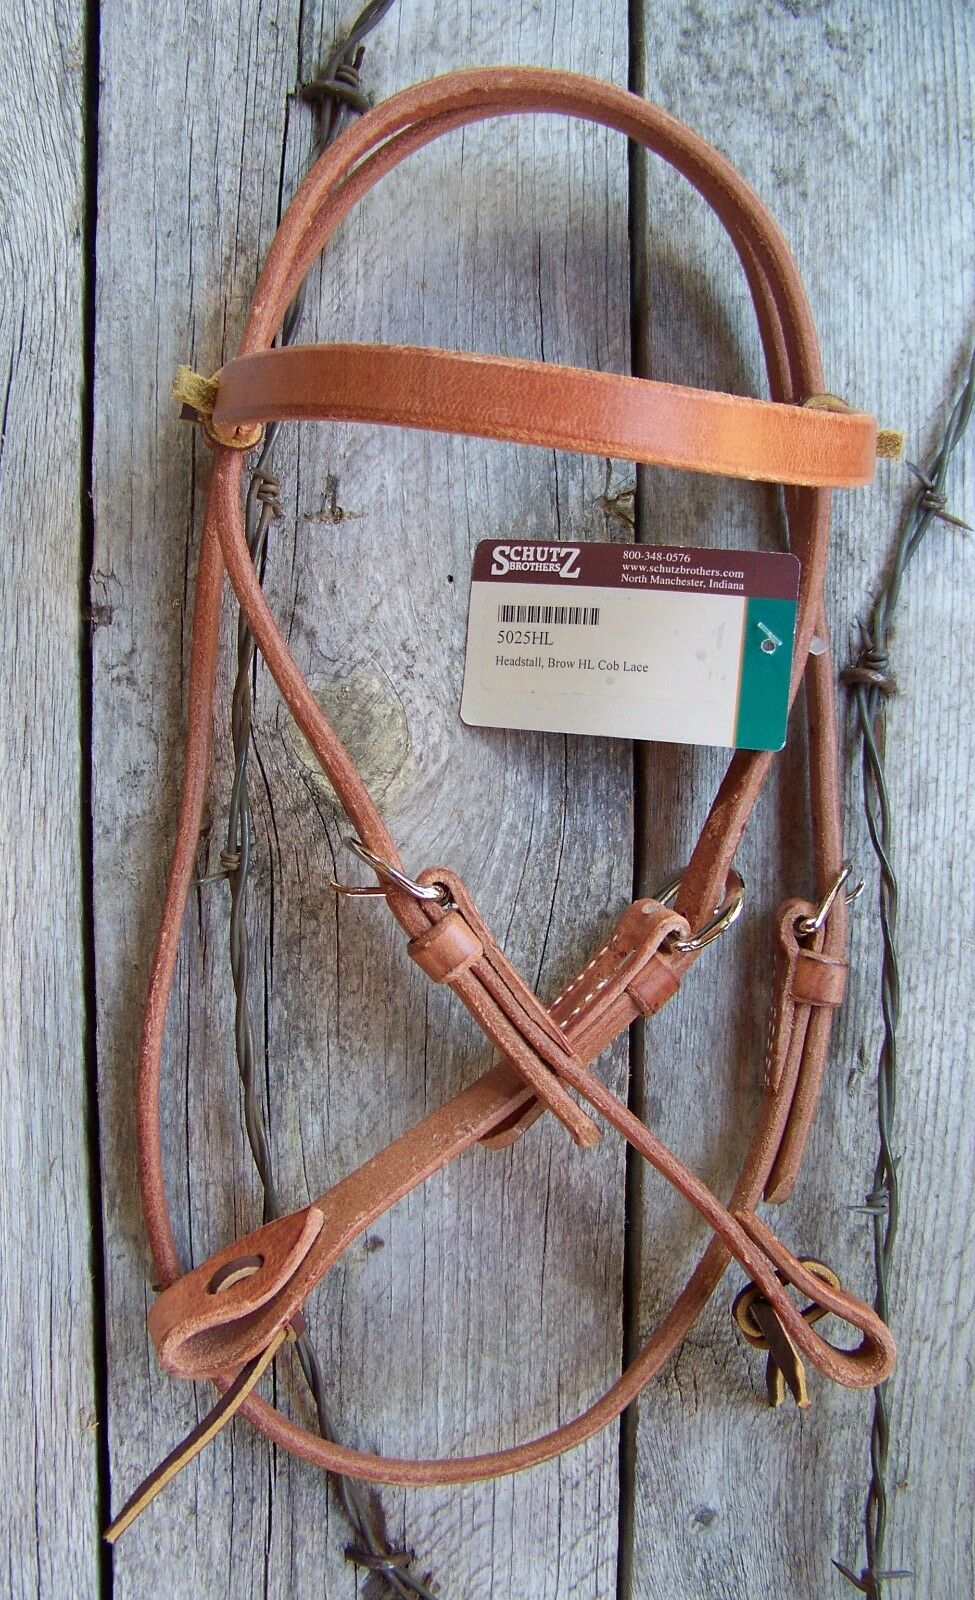 Headstall - Tie Cheek Harness Leather (Cob Size) by Schutz Bredhers